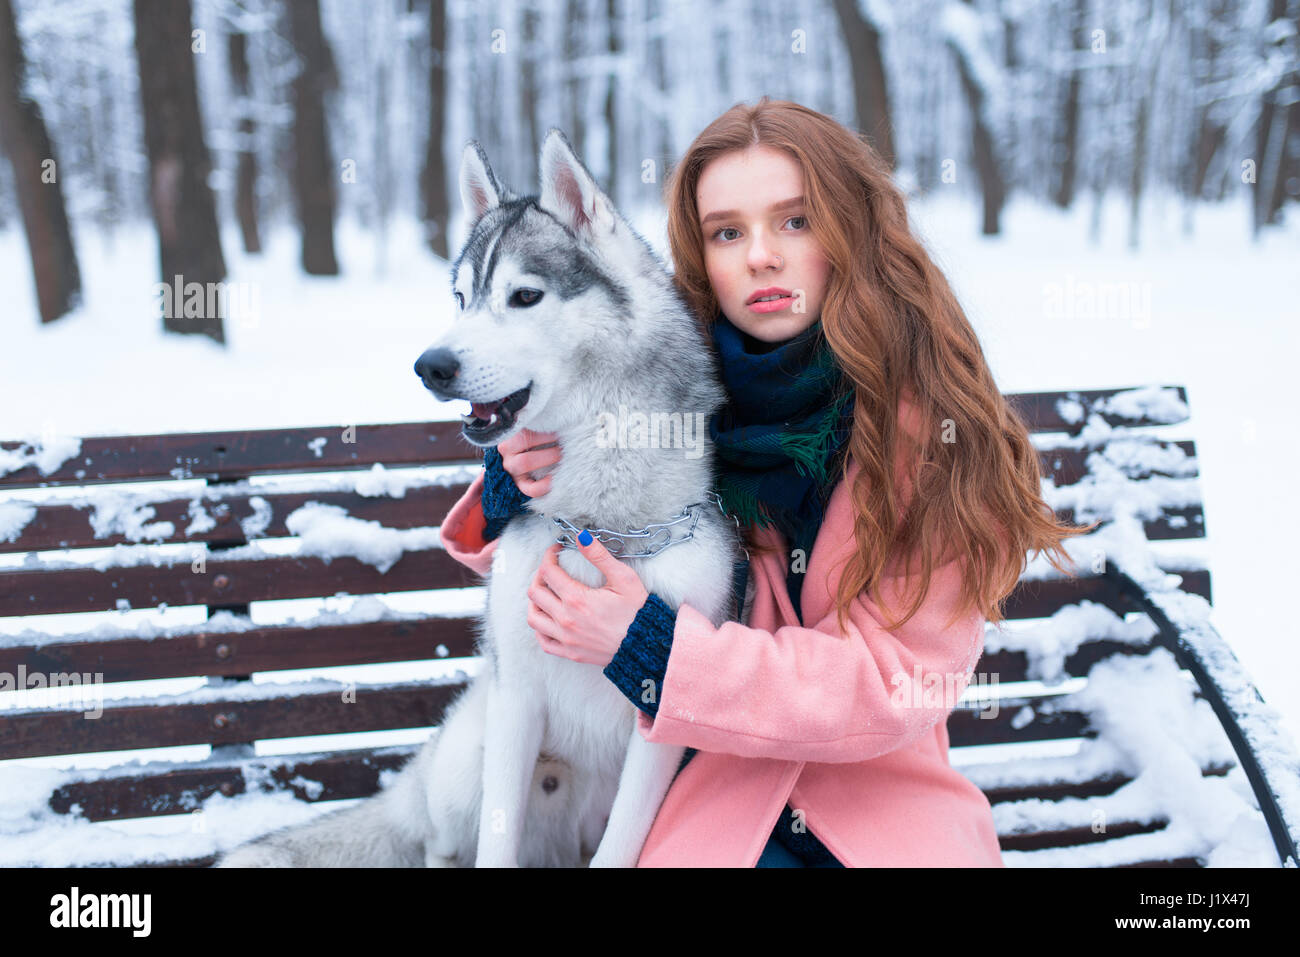 f38d53c012c Beautiful woman sitting on the bench with siberian husky